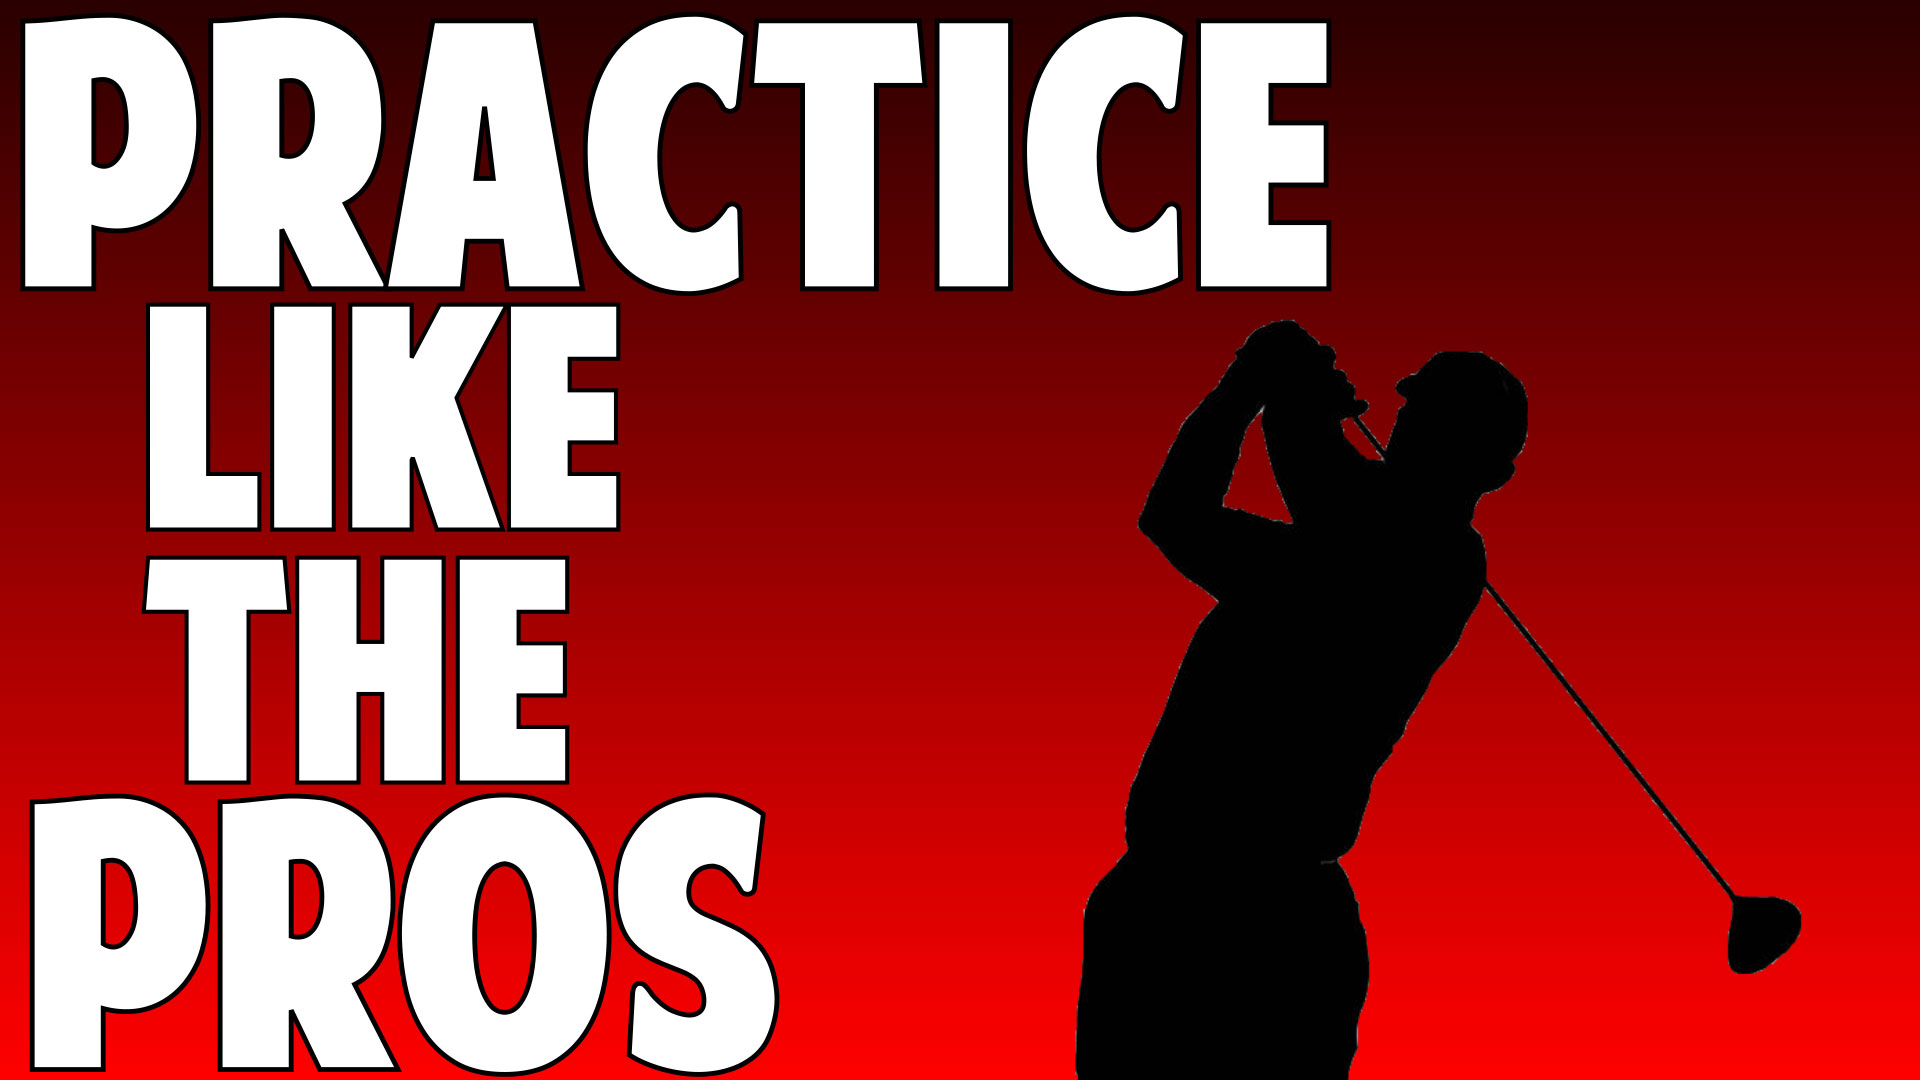 How To Practice Like The Pros 4 Keys Of Deliberate Practice